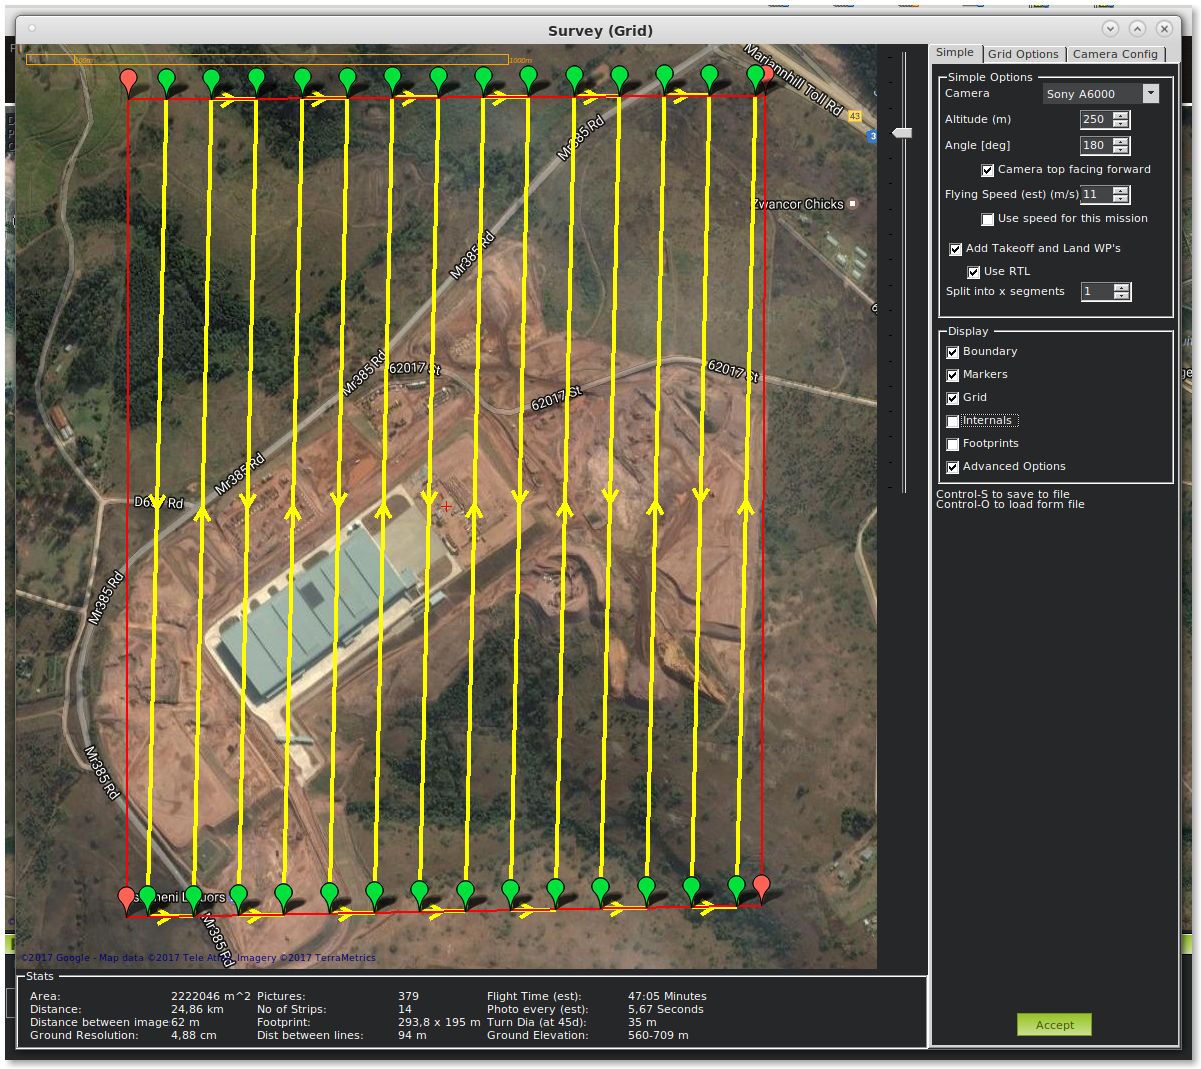 3DroneMapping completes PPK trials - News - Community Forum